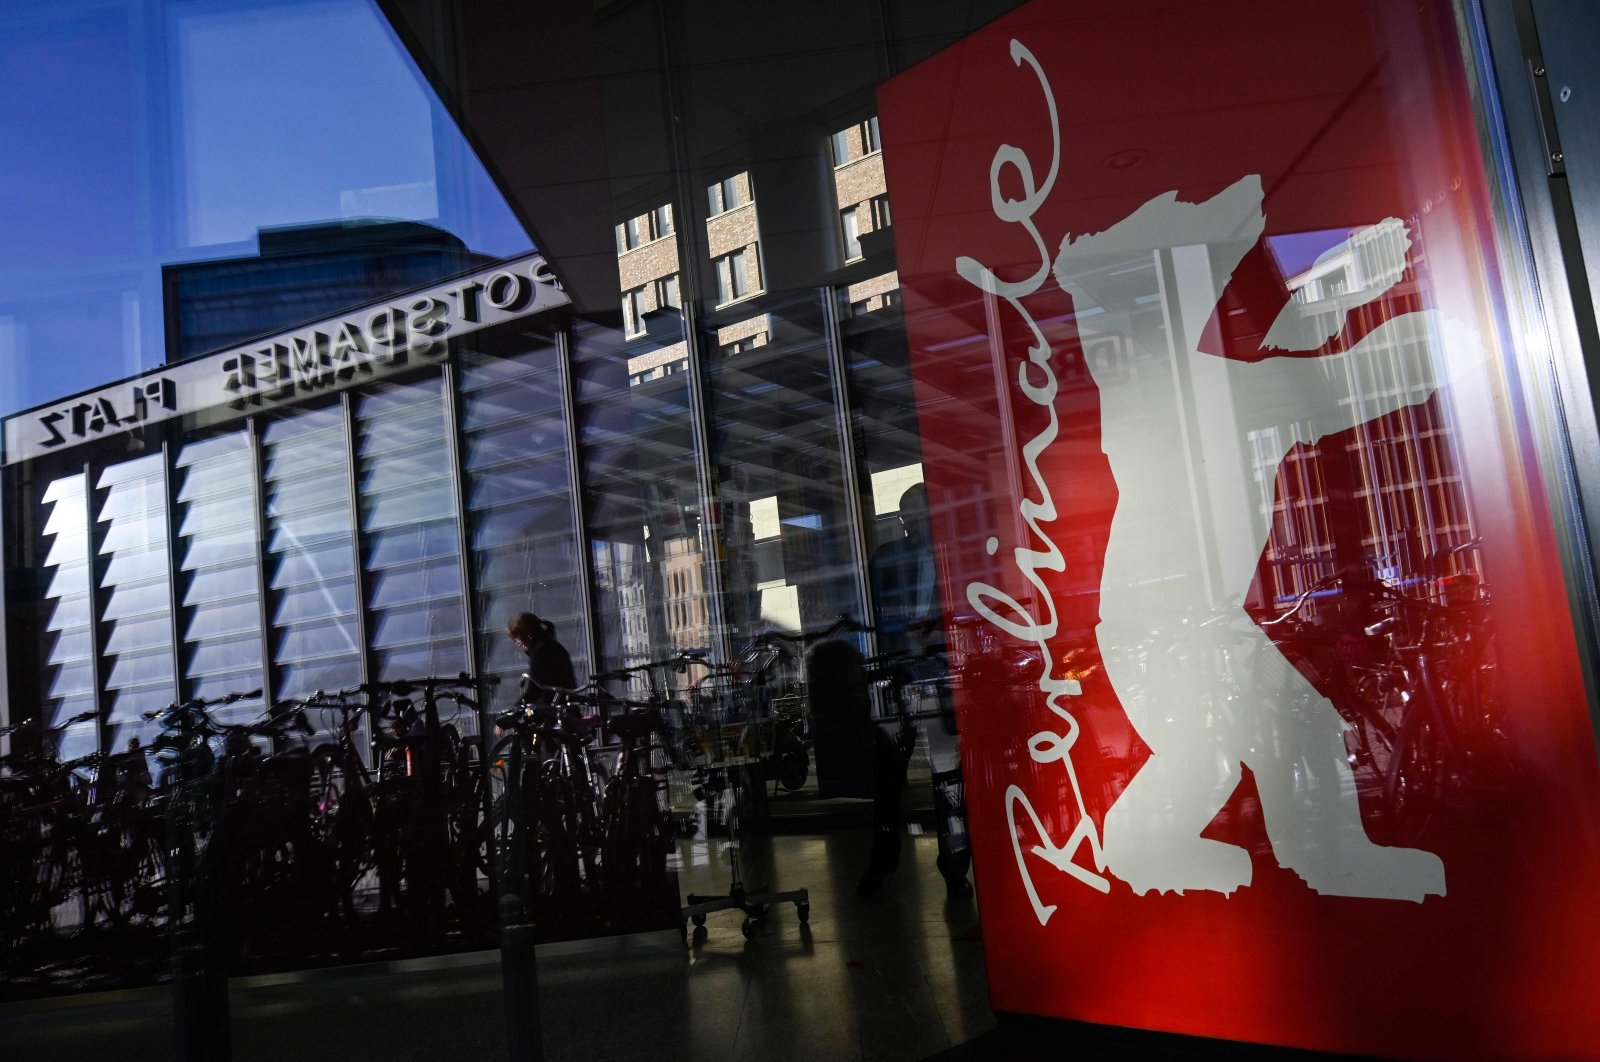 A poster depicting the logo of the Berlin film festival is pictured at the Potsdamer Platz during the 69th Berlinale film festival, Feb. 15, 2019. (AFP Photo)